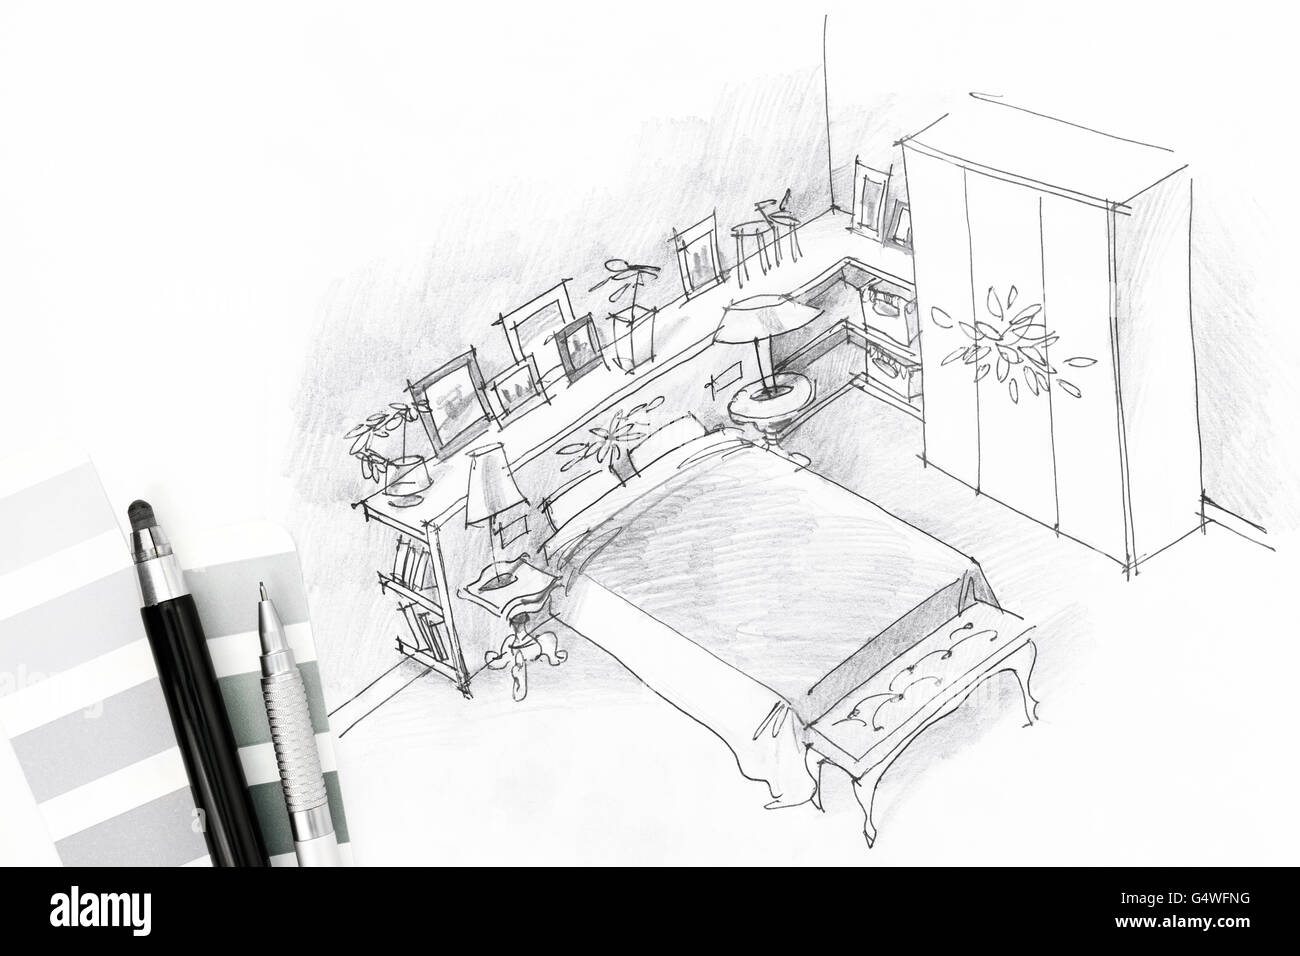 bedroom interior graphical sketch drawn by pen Stock Photo